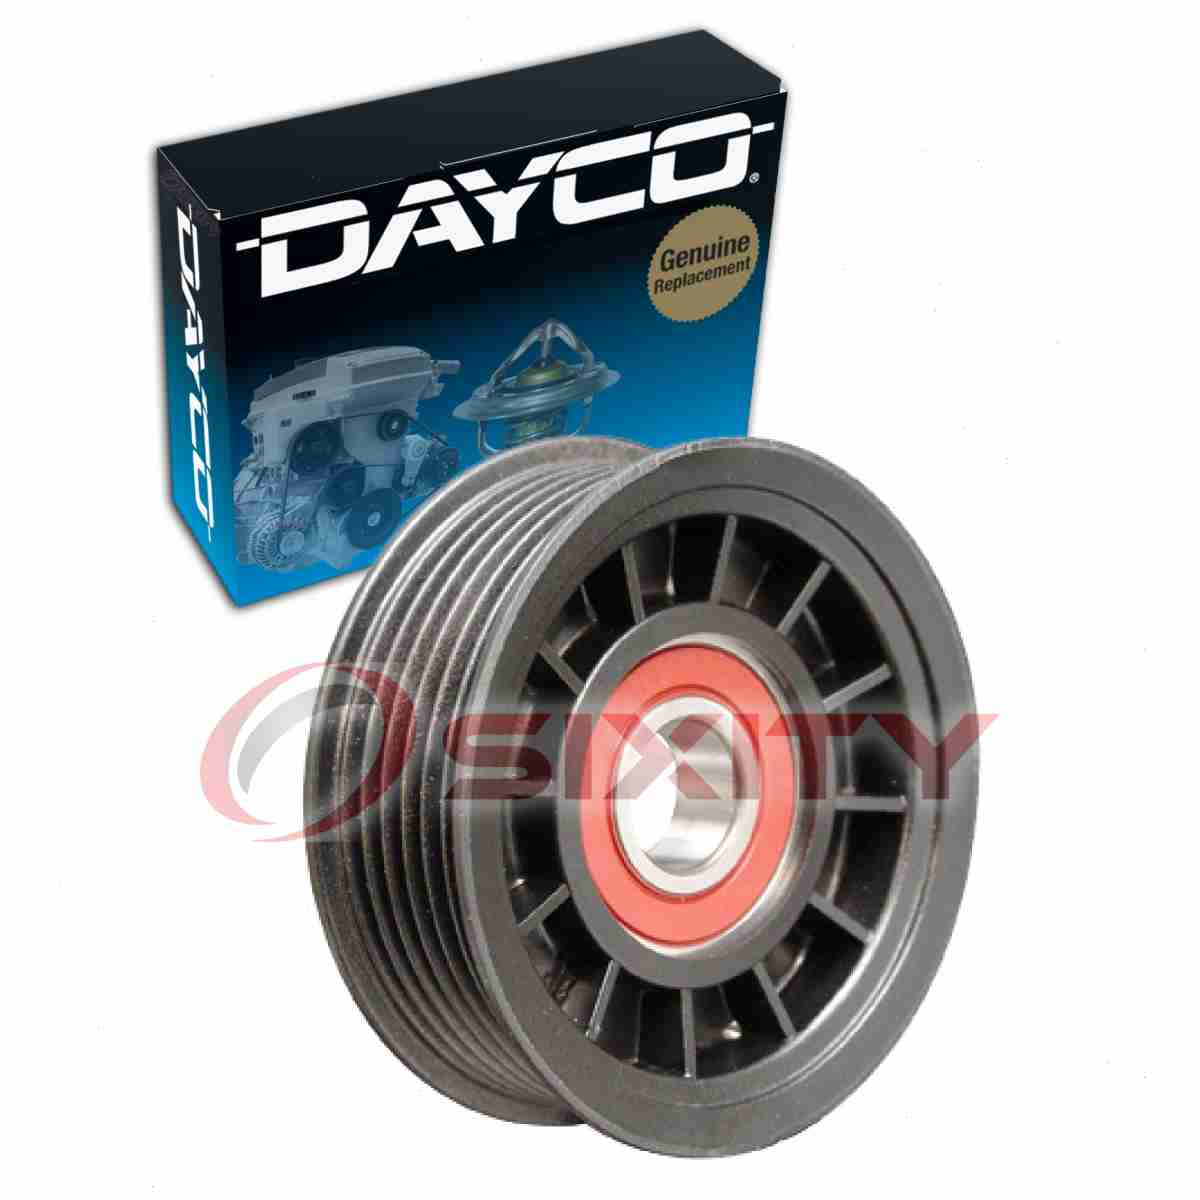 medium resolution of dayco grooved drive belt pulley for 1999 2010 jeep grand cherokee this jeep grand cherokee belt diagram is for model year 2005 with v6 3